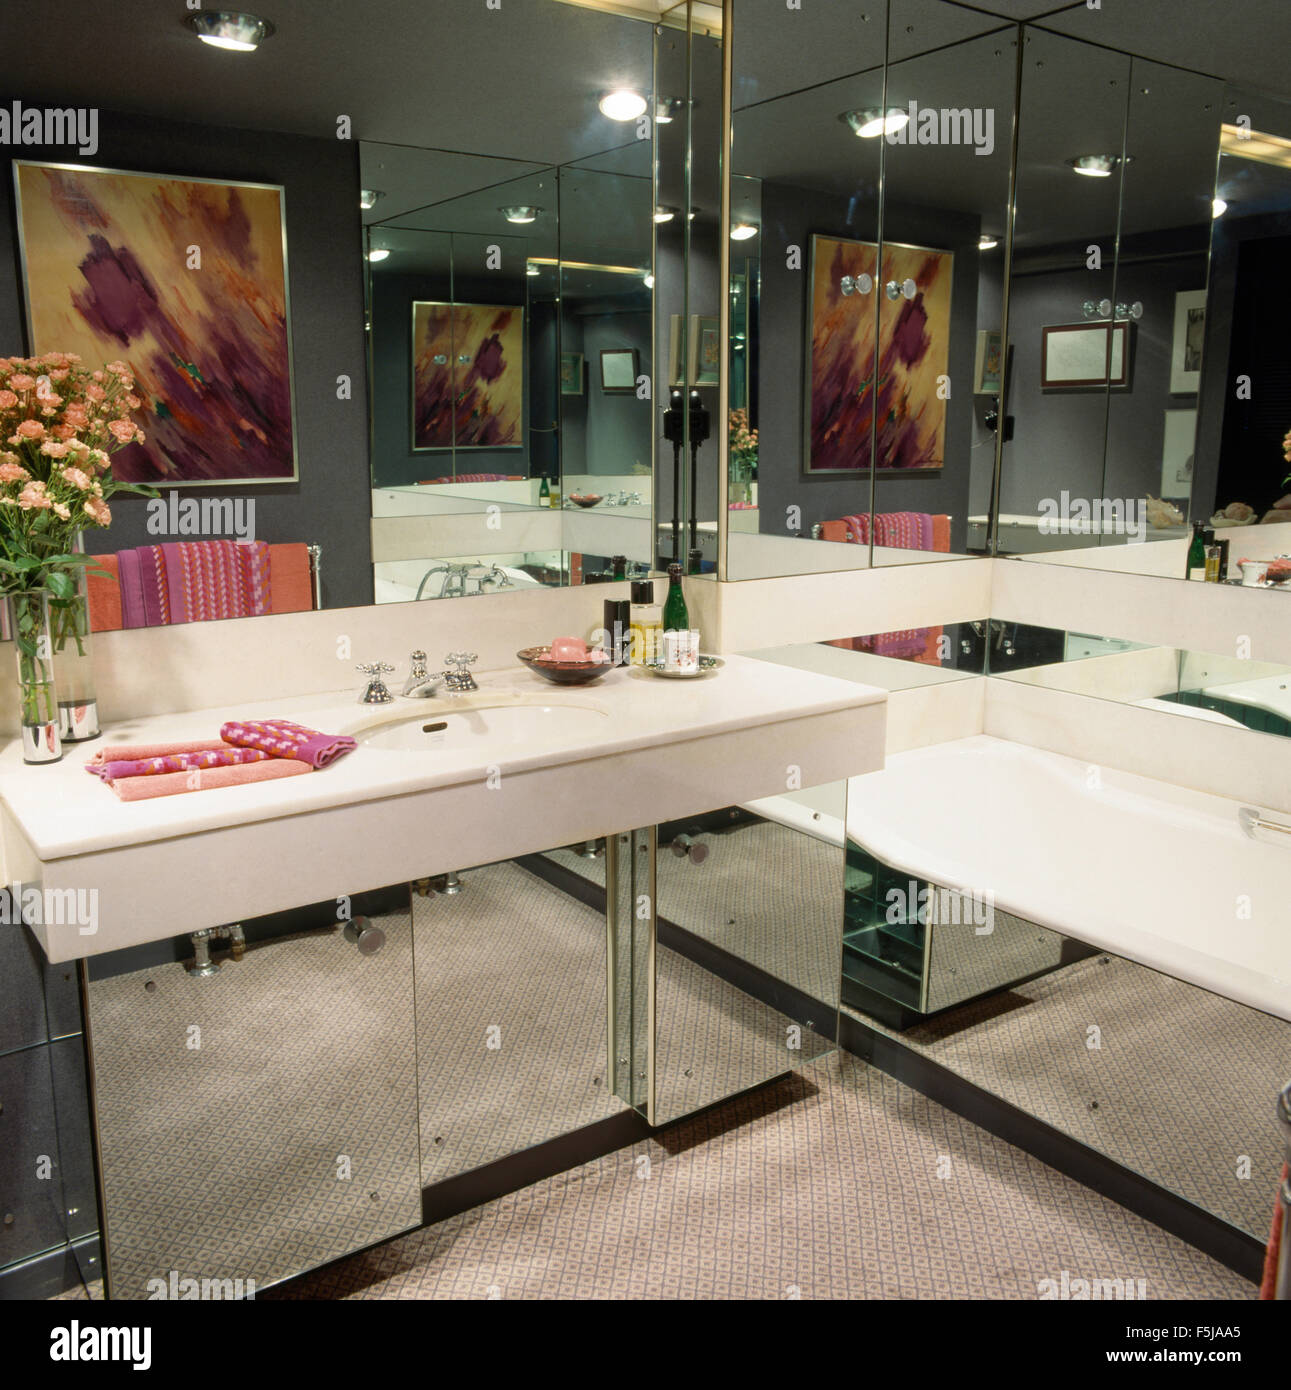 Mirrored walls and bath panel in eighties bathroom with a mirrored mirrored walls and bath panel in eighties bathroom with a mirrored vanity unit amipublicfo Choice Image